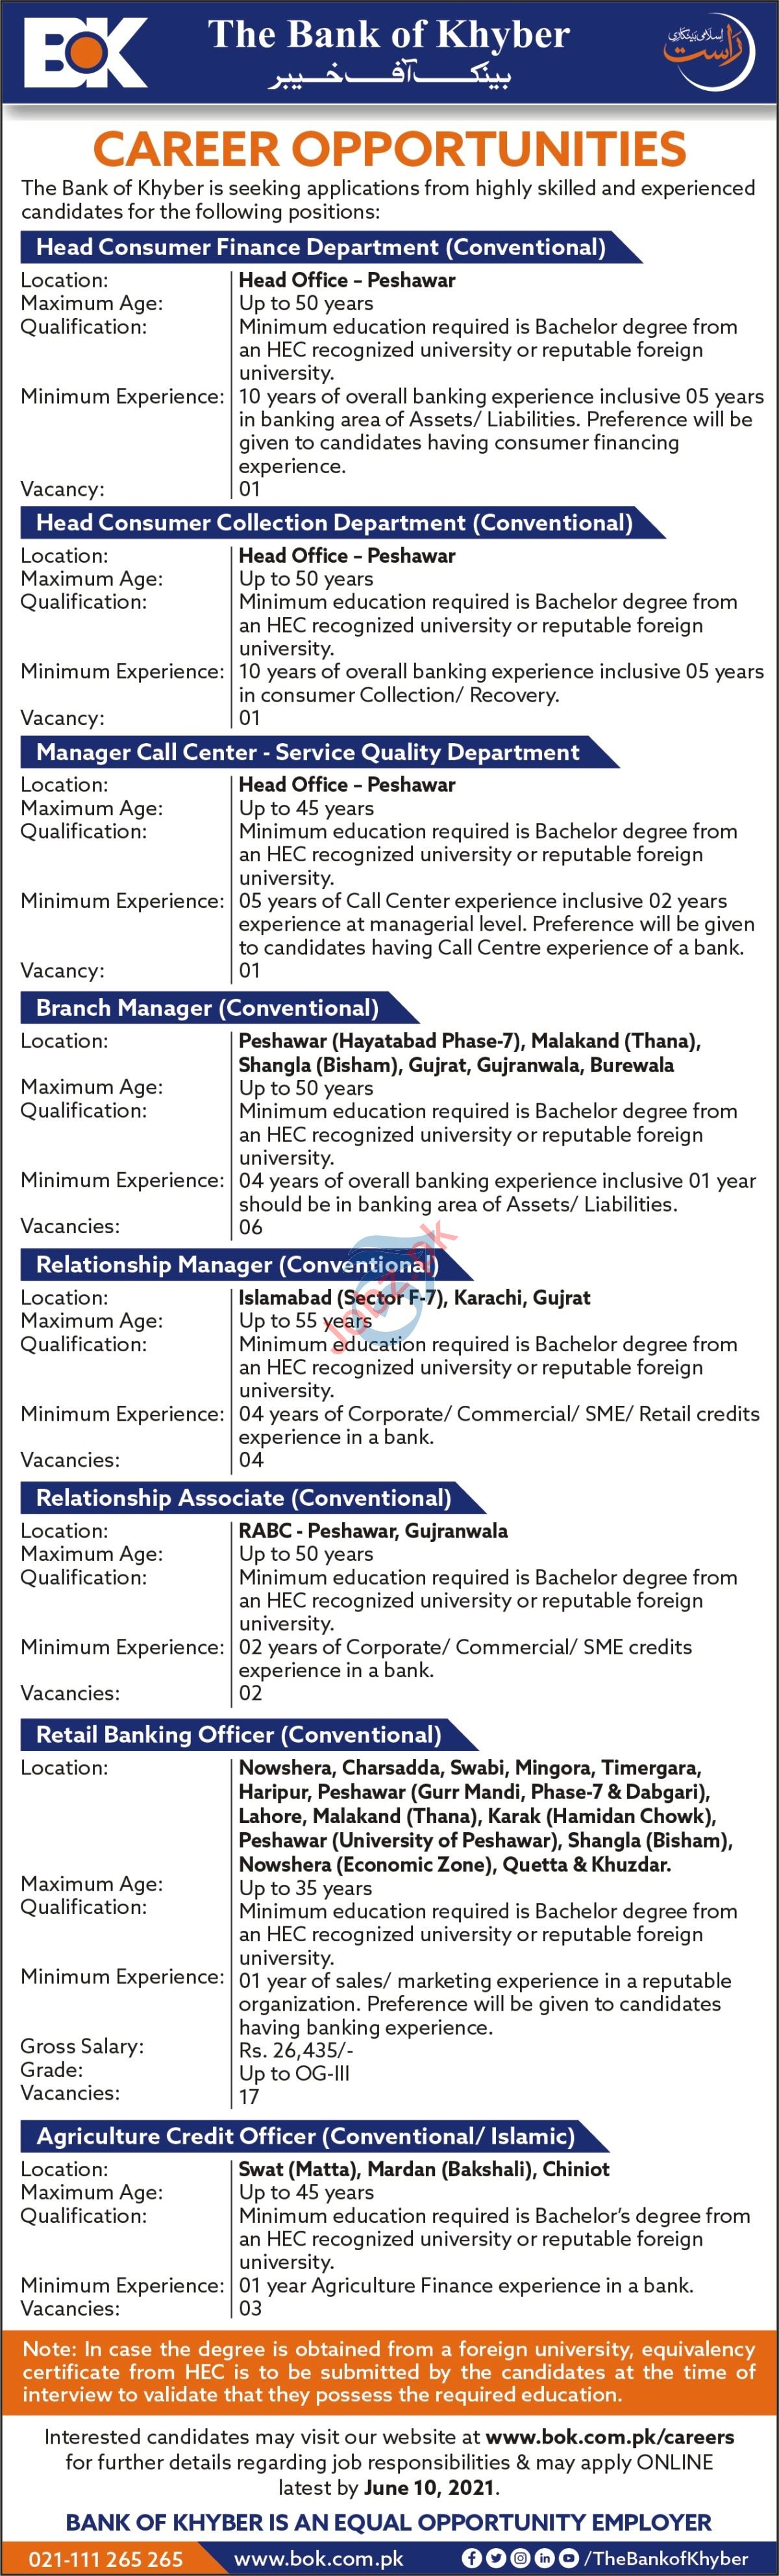 Head Consumer Finance Department & Manager Jobs 2021